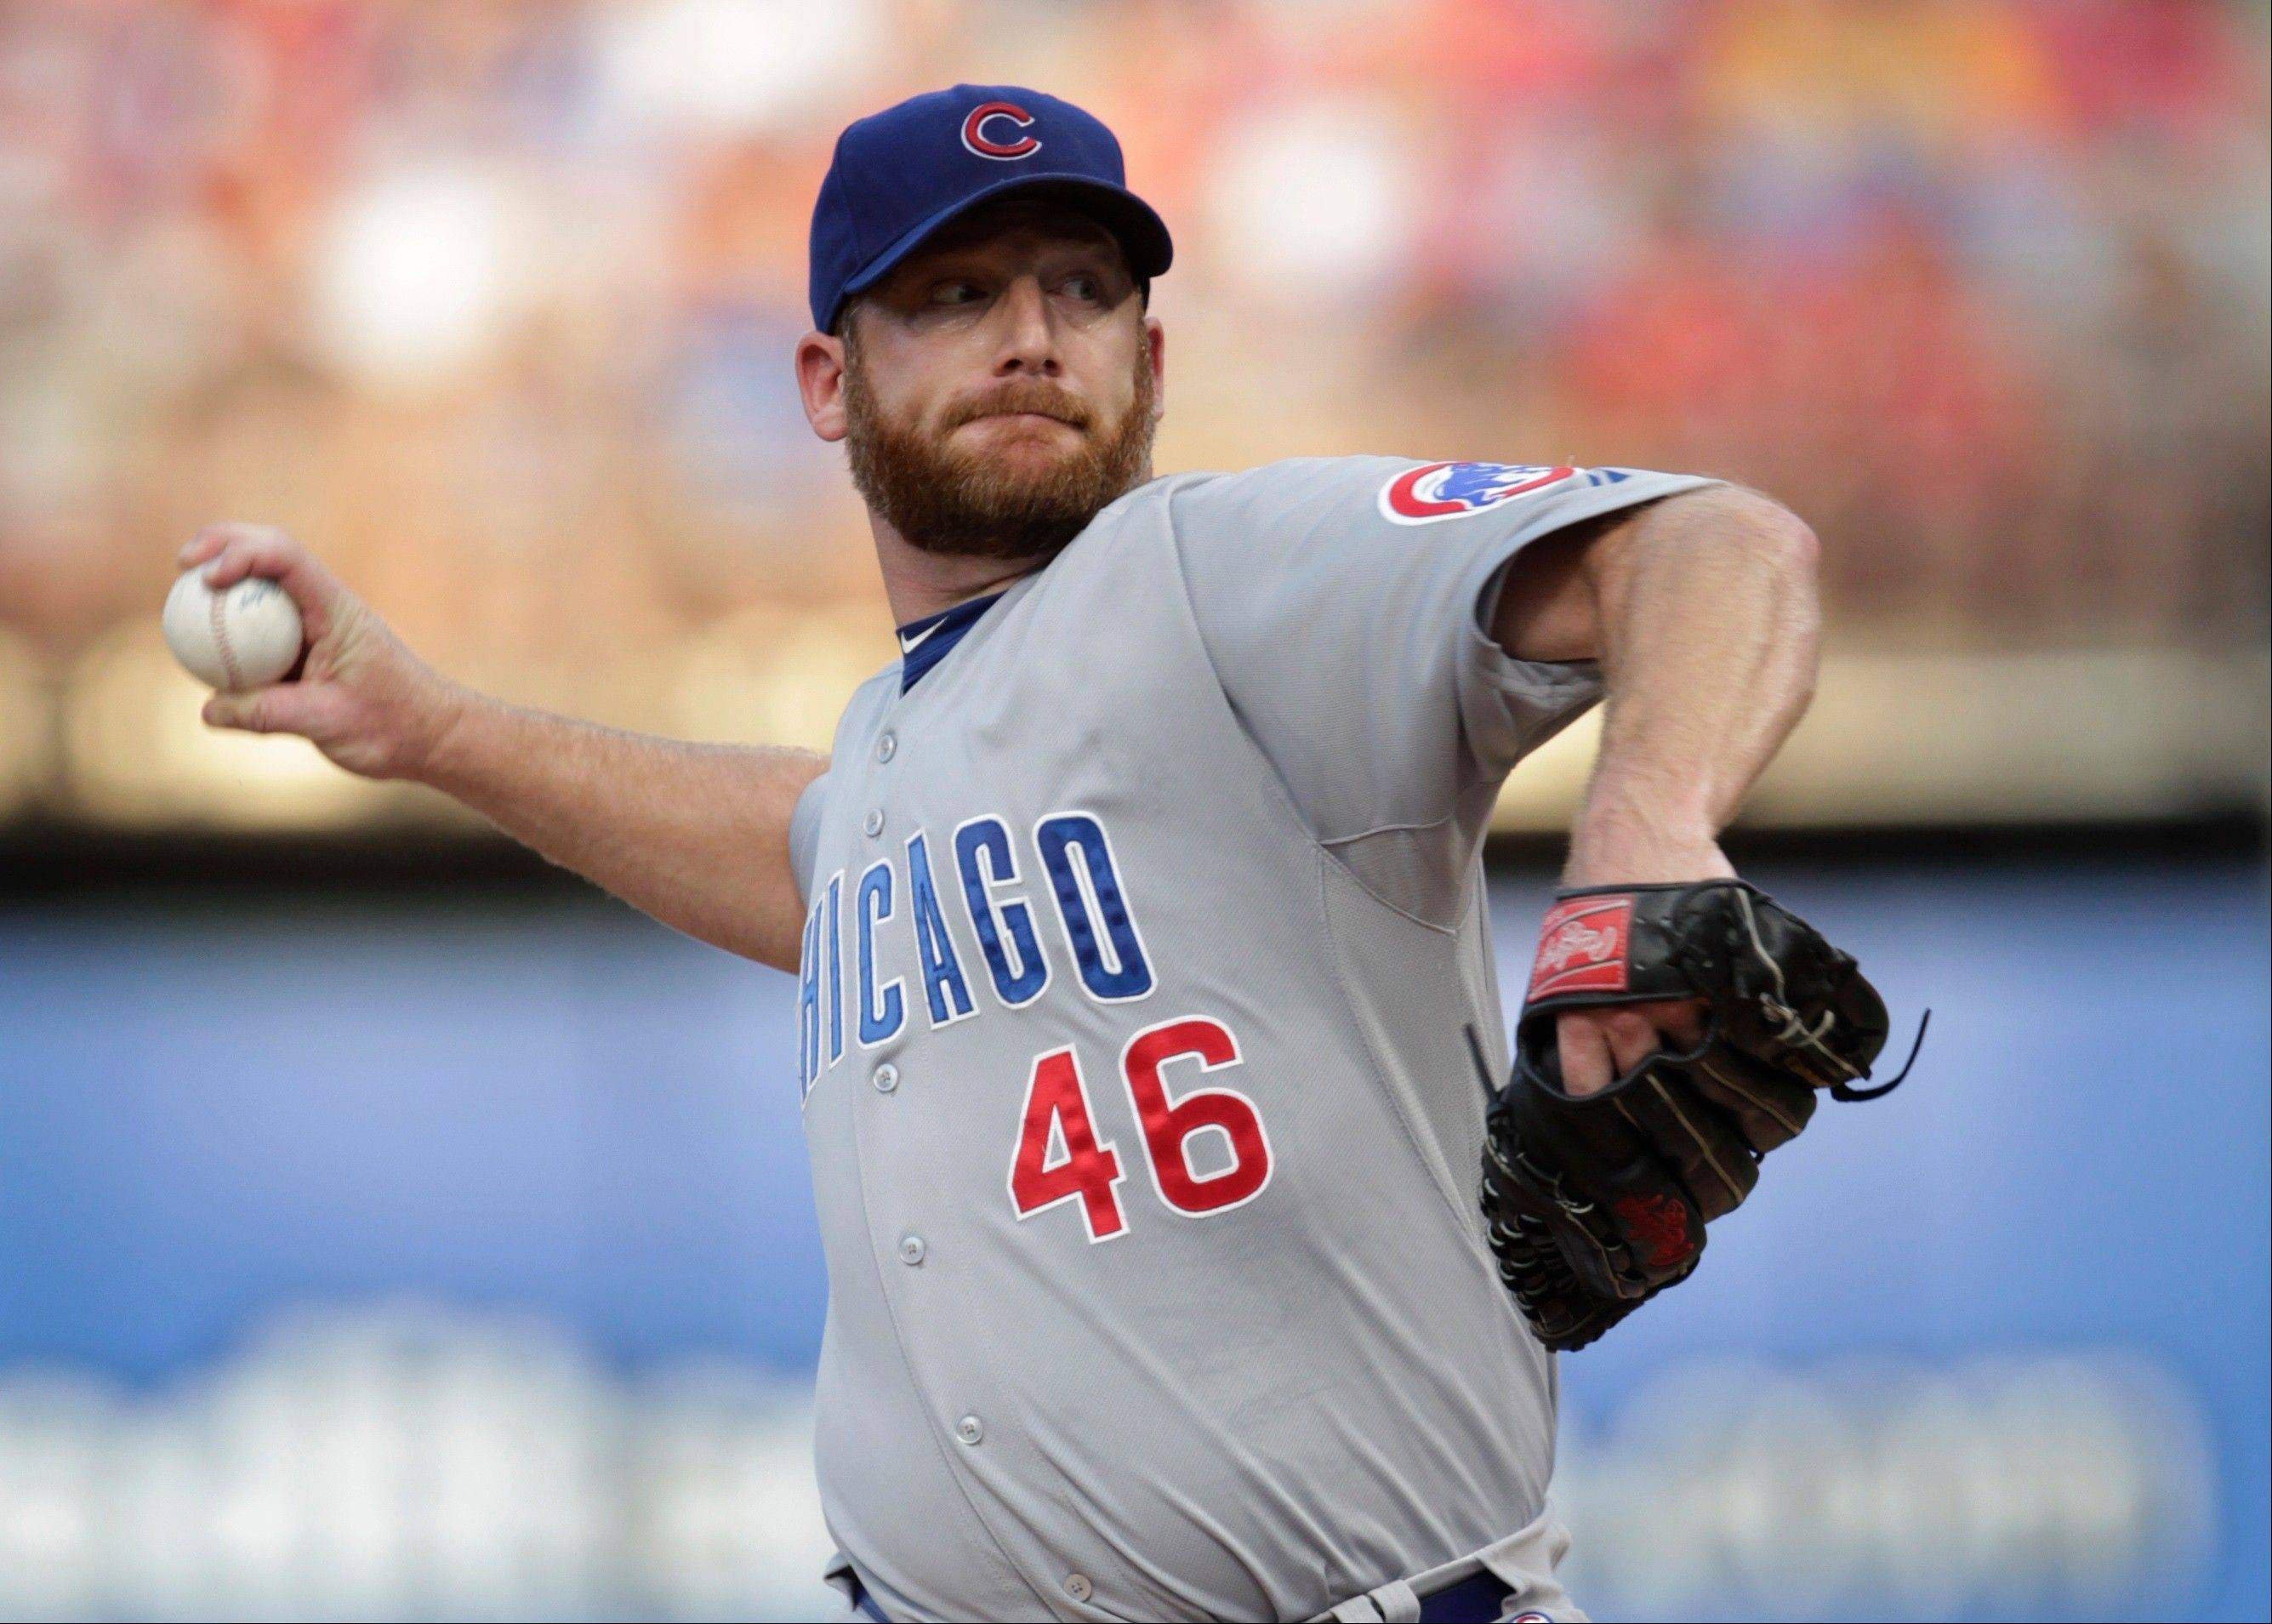 Cubs starting pitcher Ryan Dempster says there's still time to consider any trade possibilities.